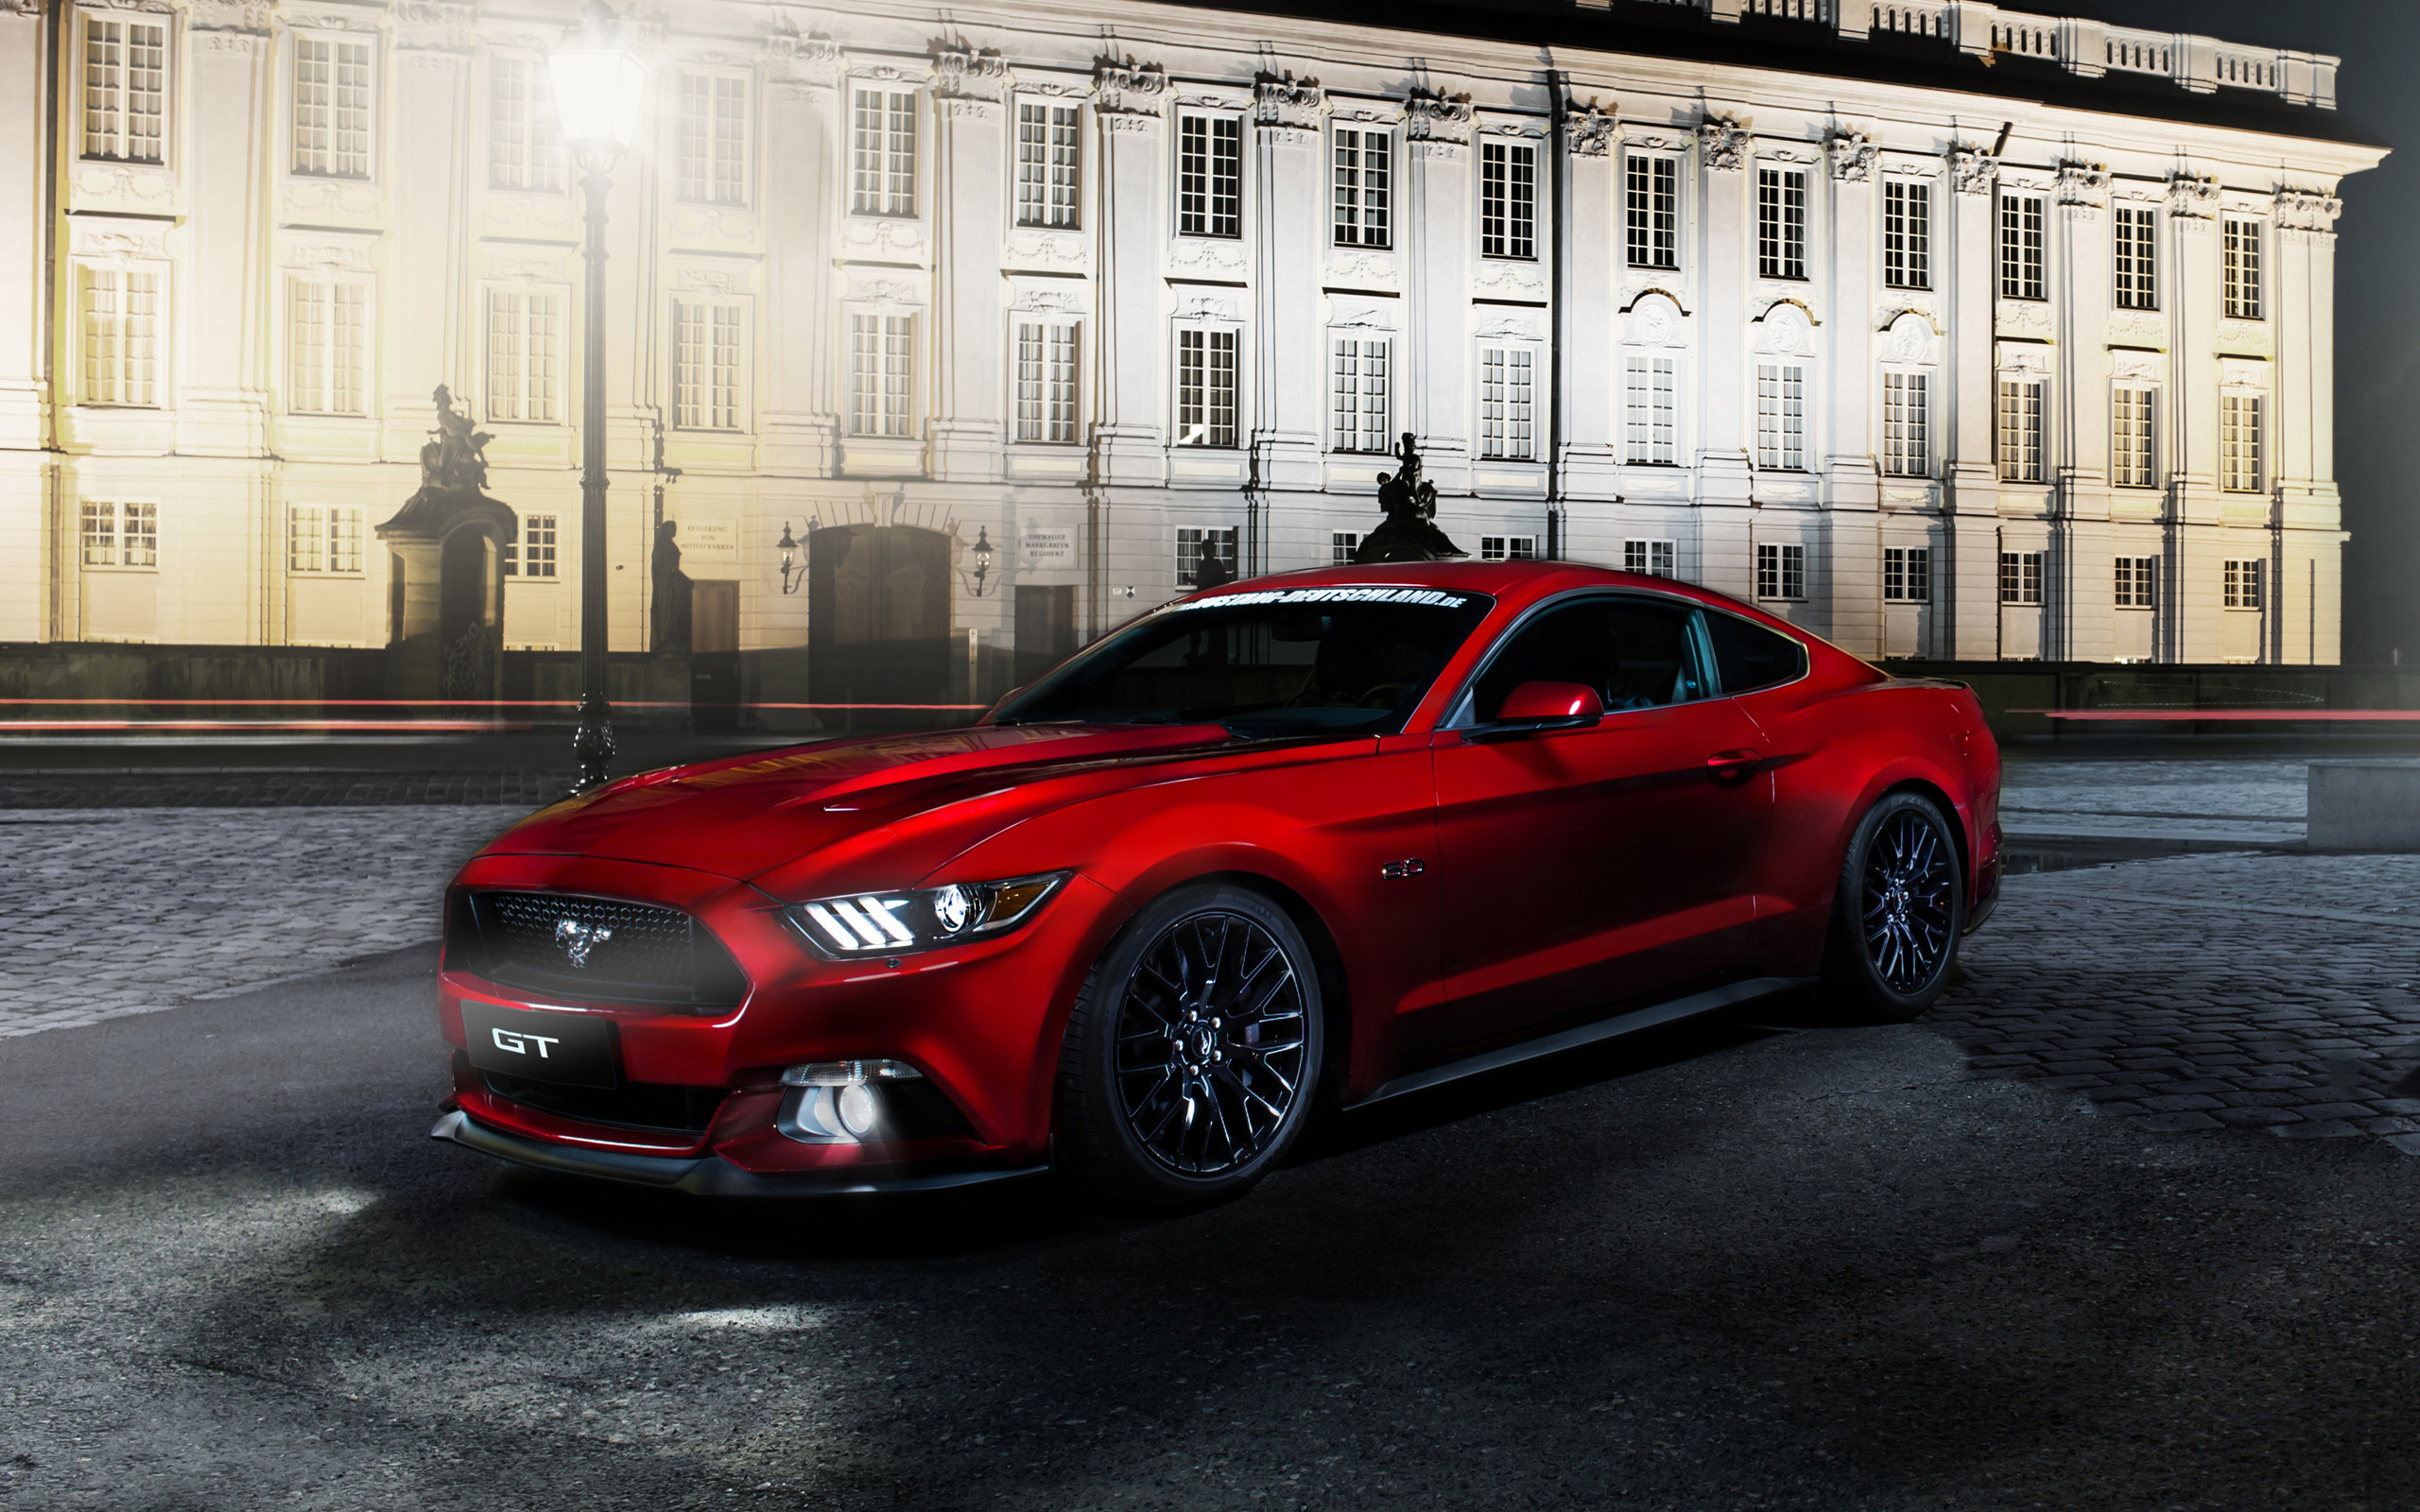 Ford Mustang Gt Wallpaper 75 Images 2015 Black Hd Photo 2011 Grivucom Custom